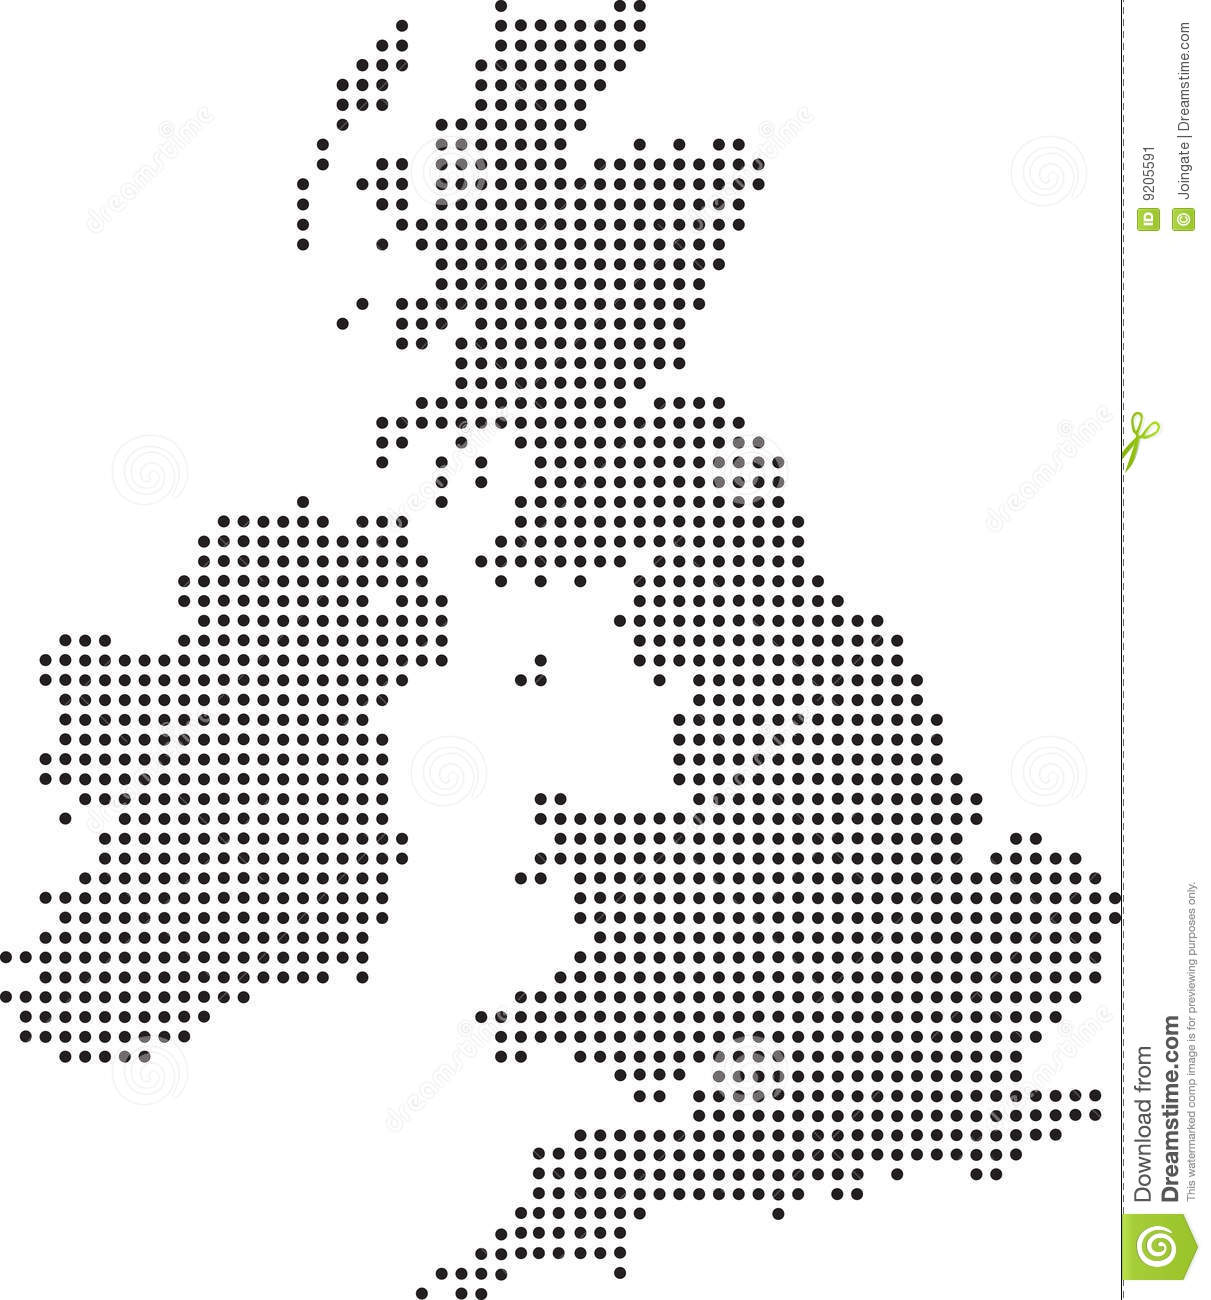 Illustration of a map of the uk made up of dots.